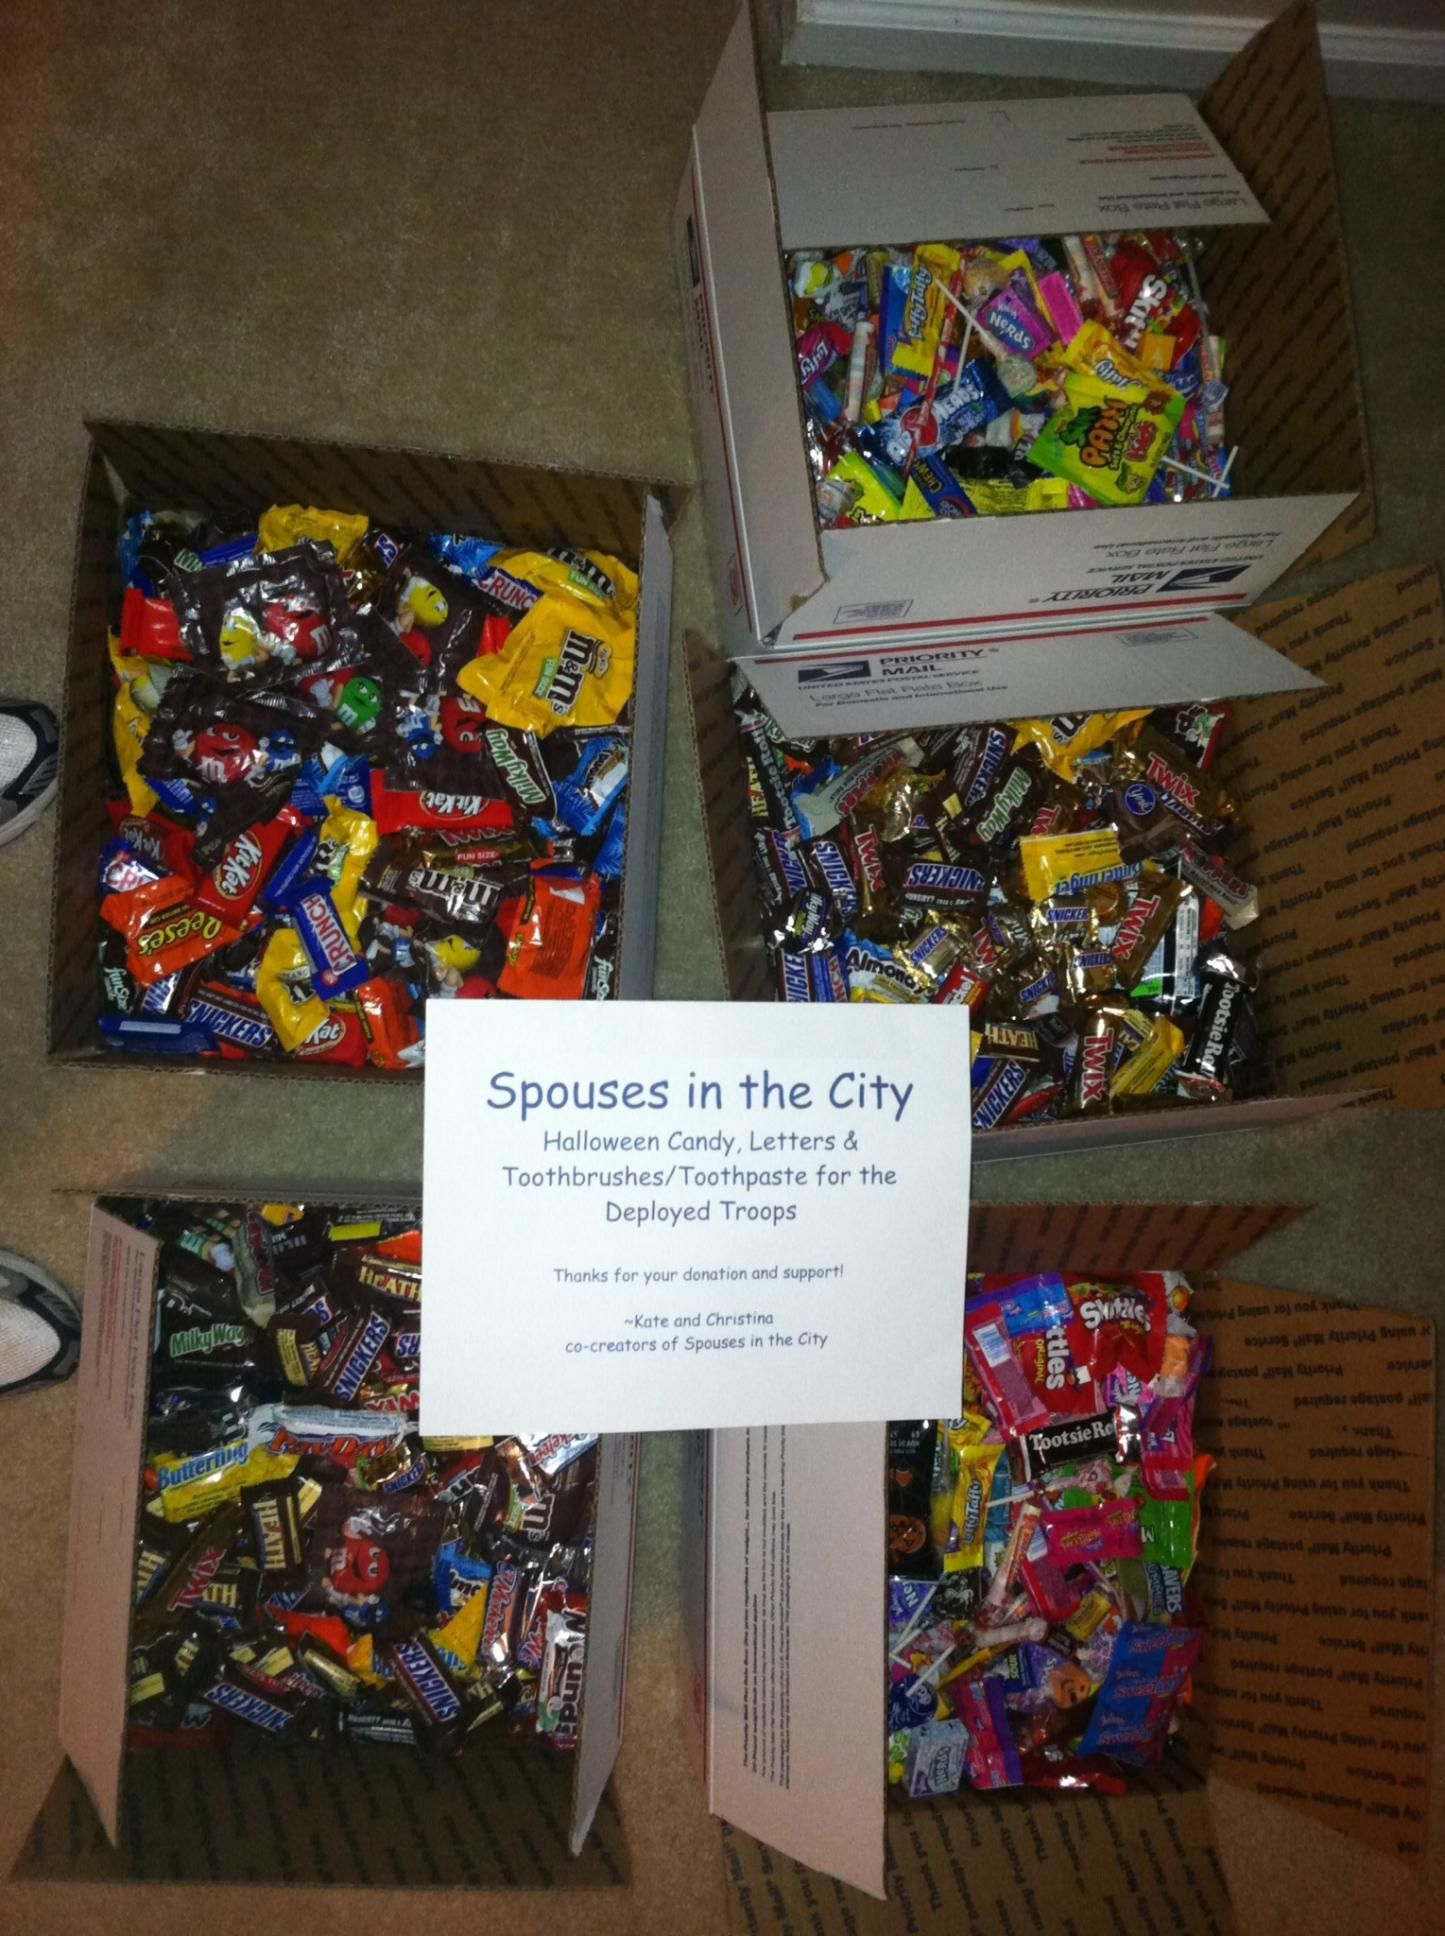 Halloween candy collection for the deployed troops. Over 57lbs of candy sent to Operation Gratitude in November 2011